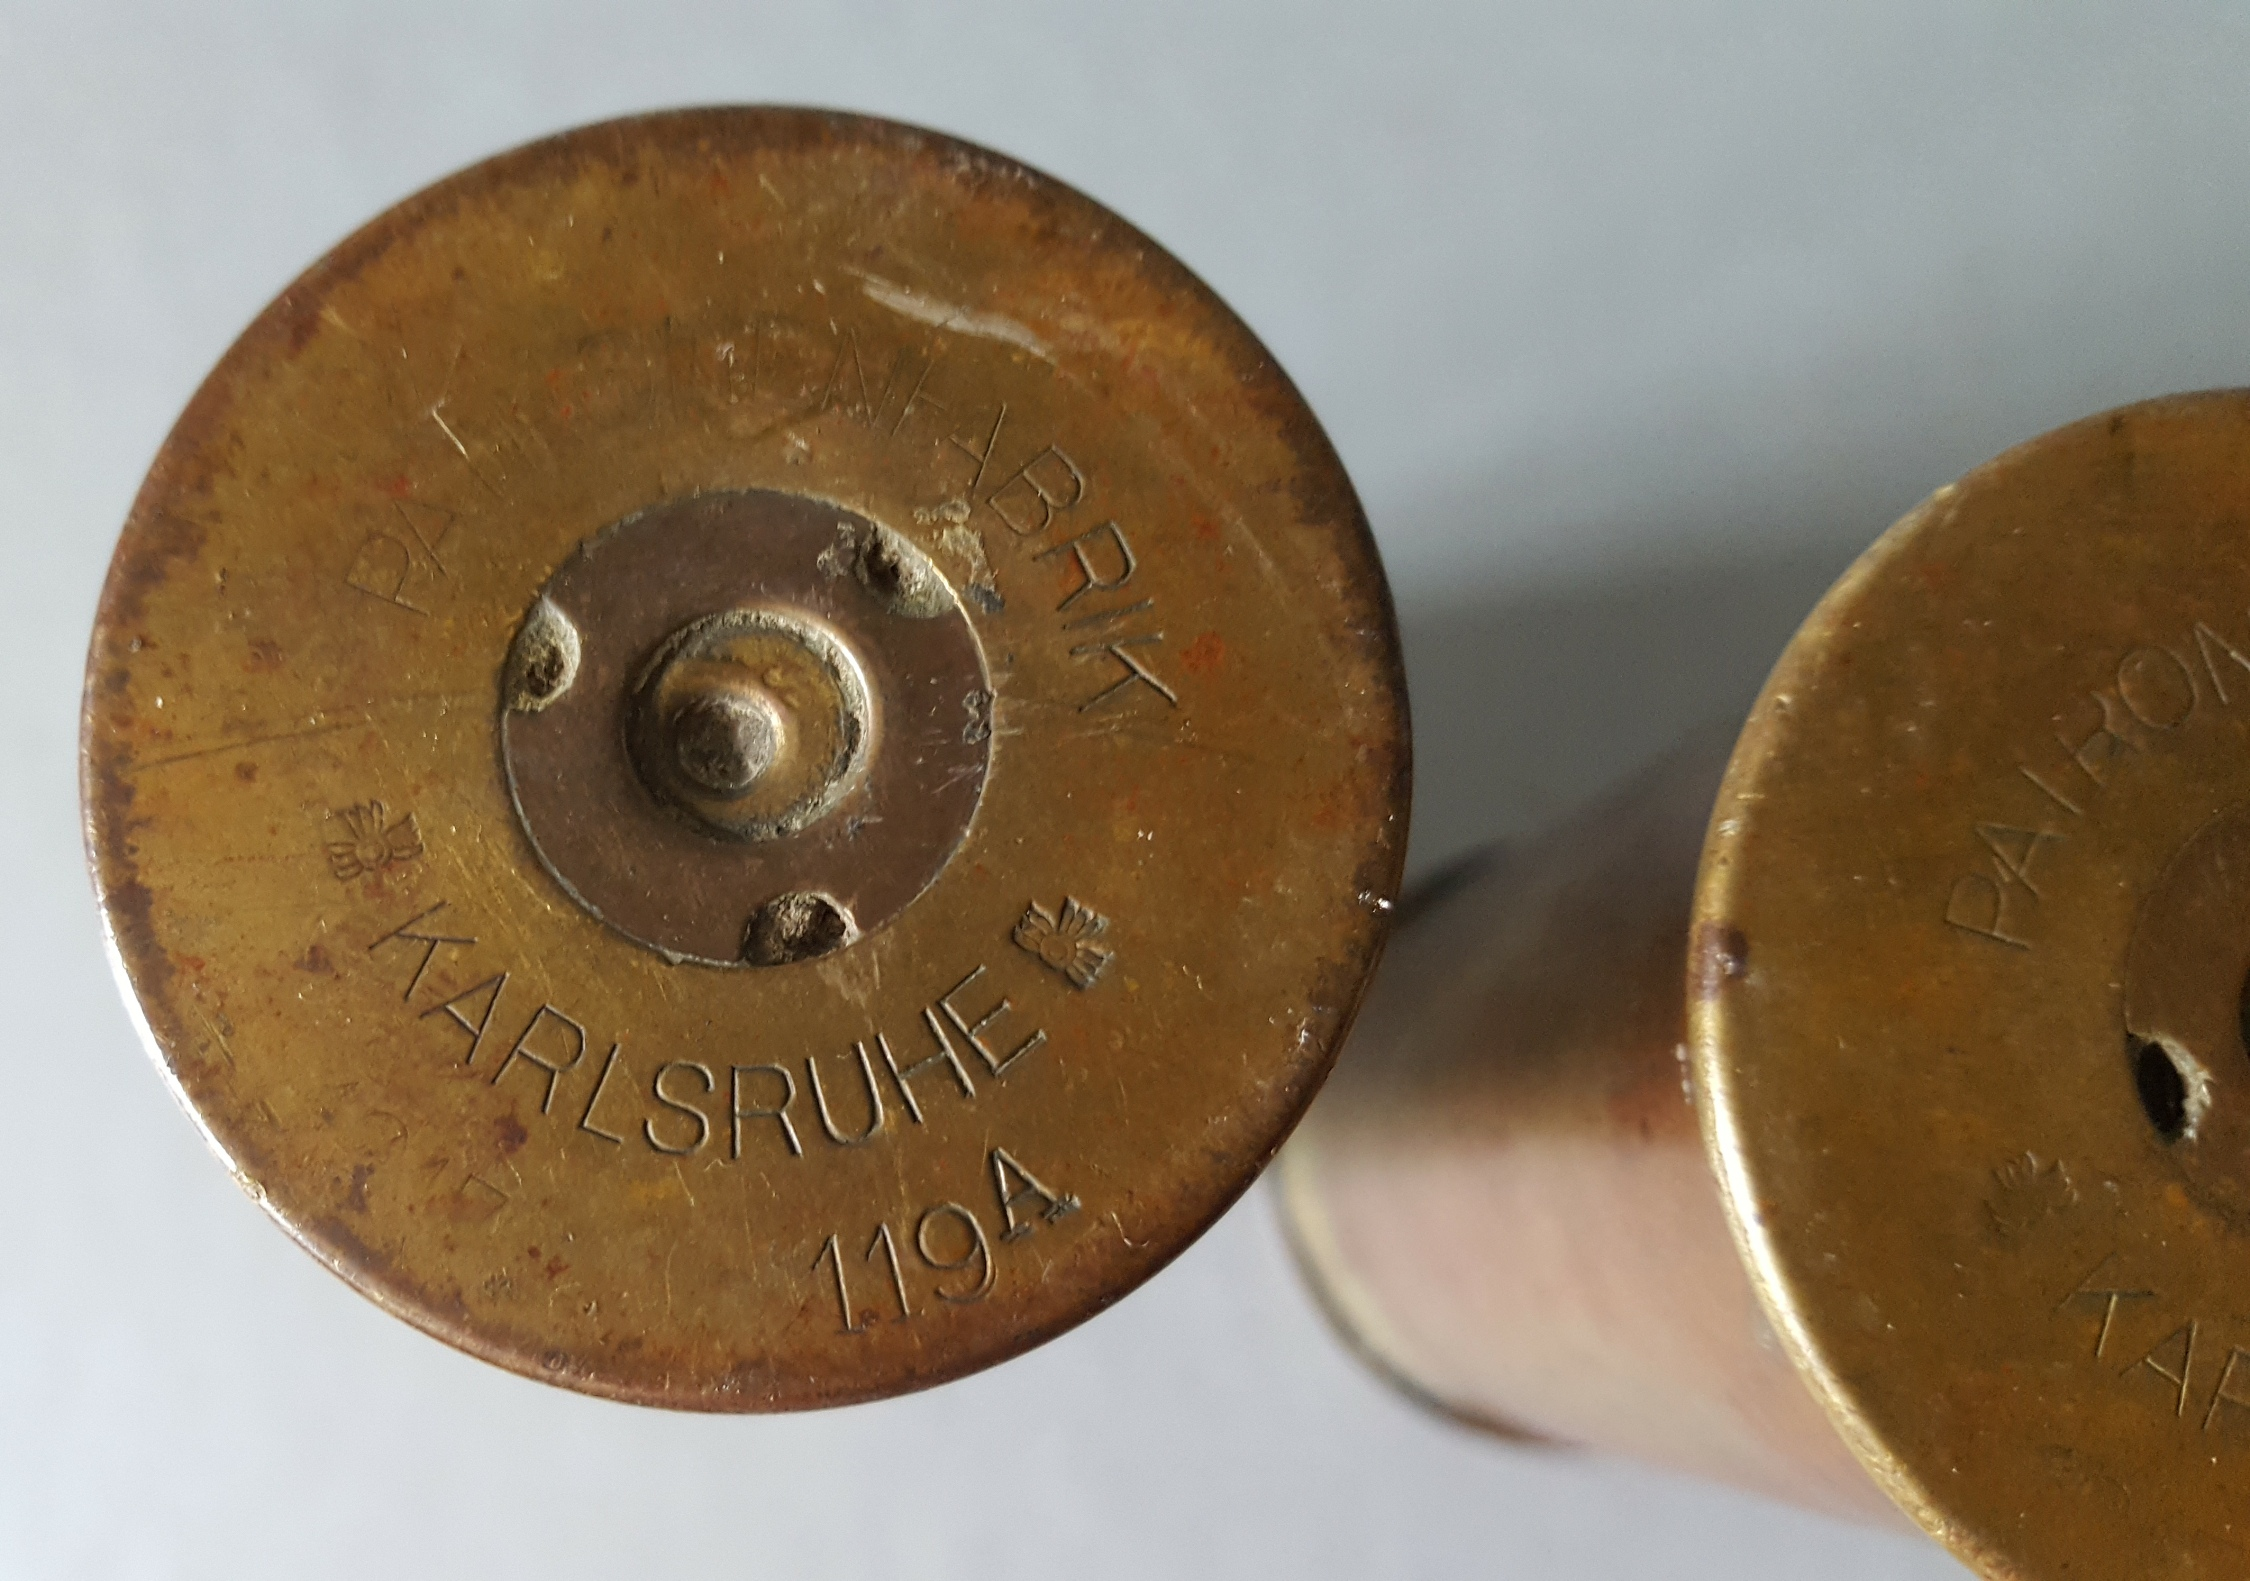 Lot 31 - Antique Military WWI Trench Art Sell Casings German Karlsruhe 37mm Shells.